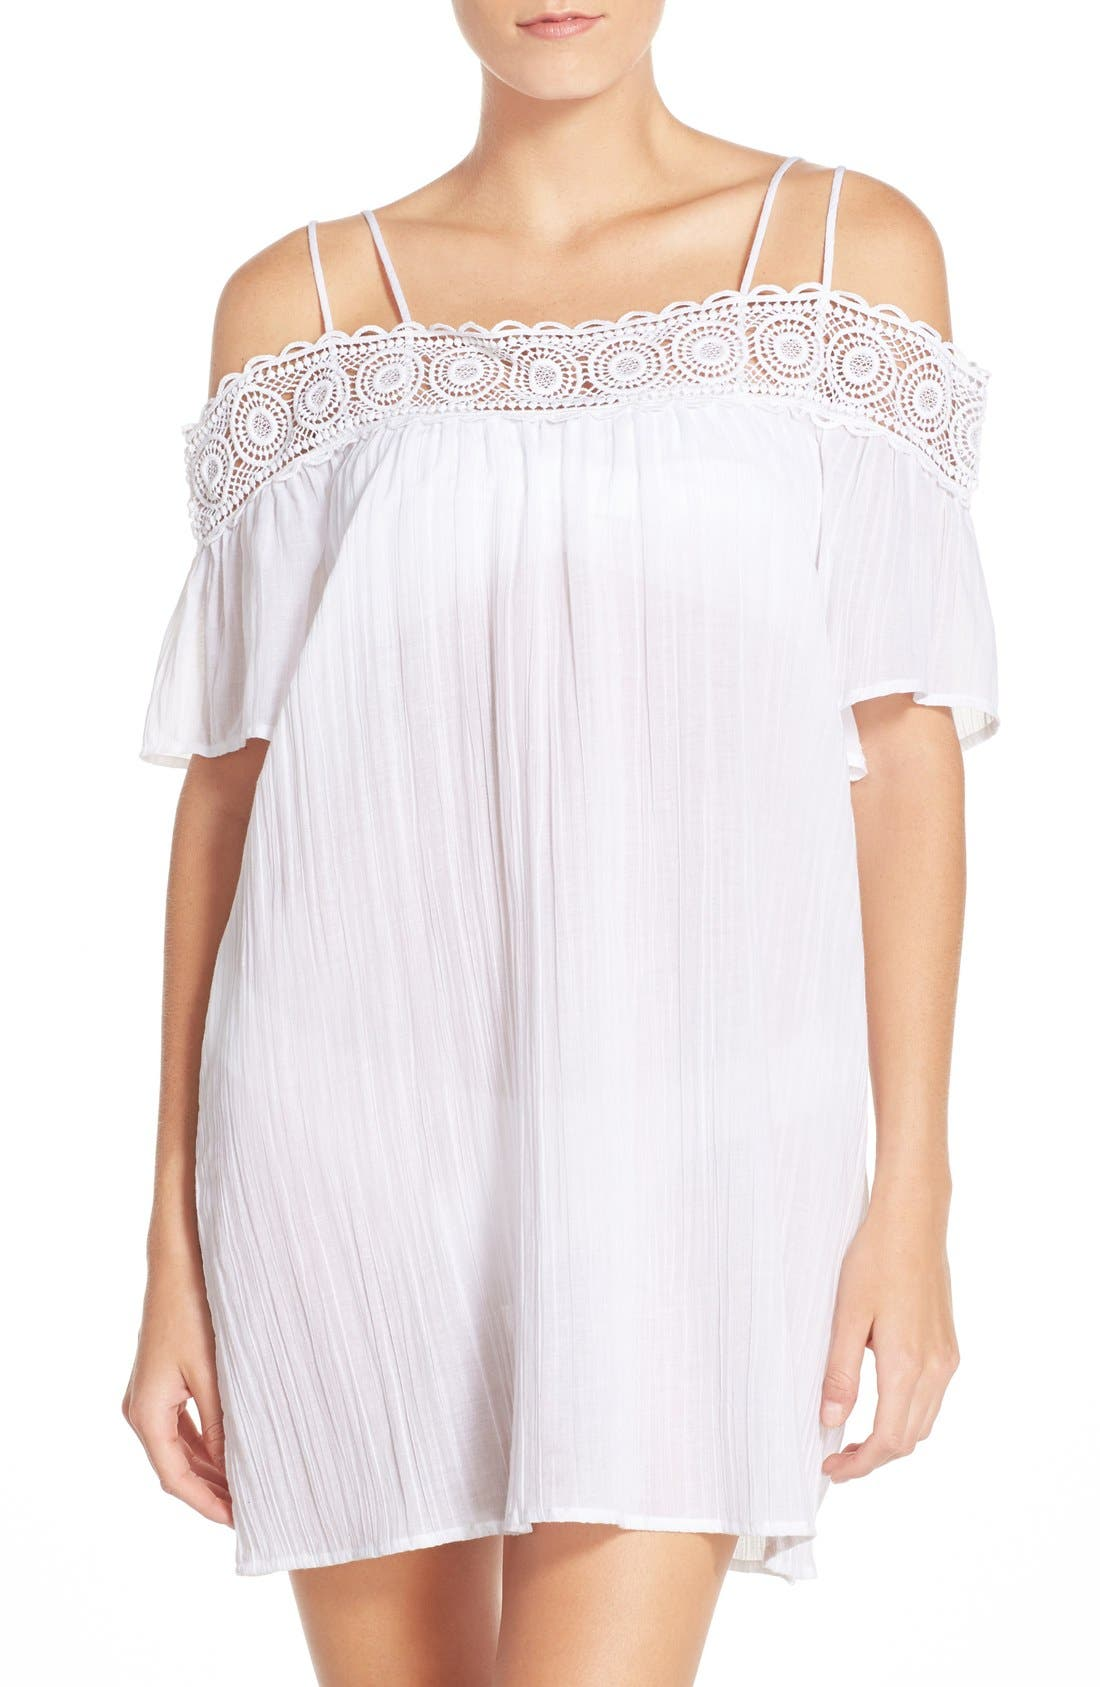 LA BLANCA 'Island Fare' Cotton Cover-Up Slipdress